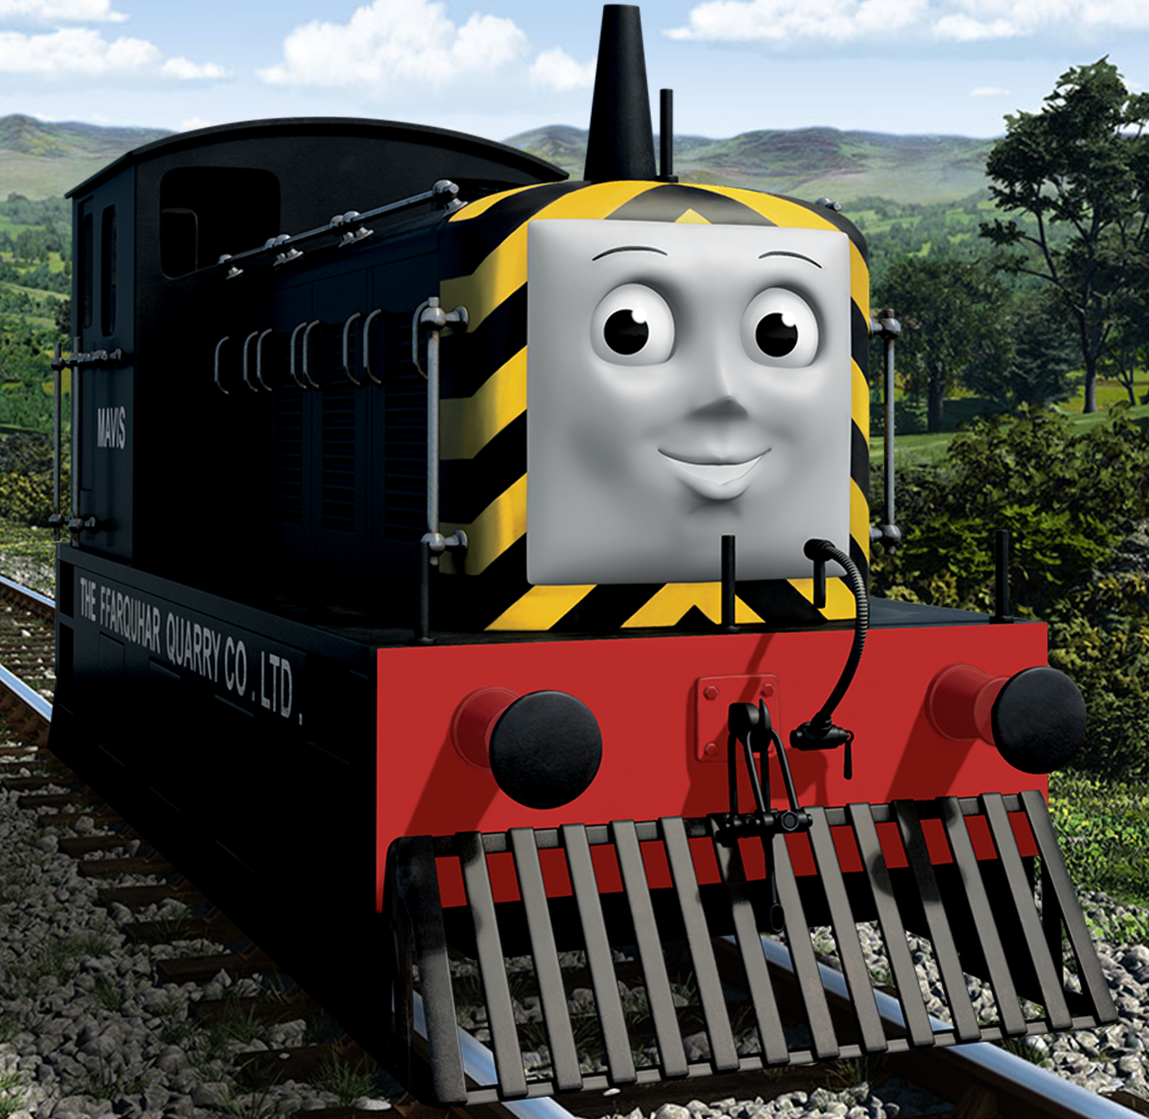 Mavis Thomas Friends Cgi Series Wiki Fandom Powered By Wikia